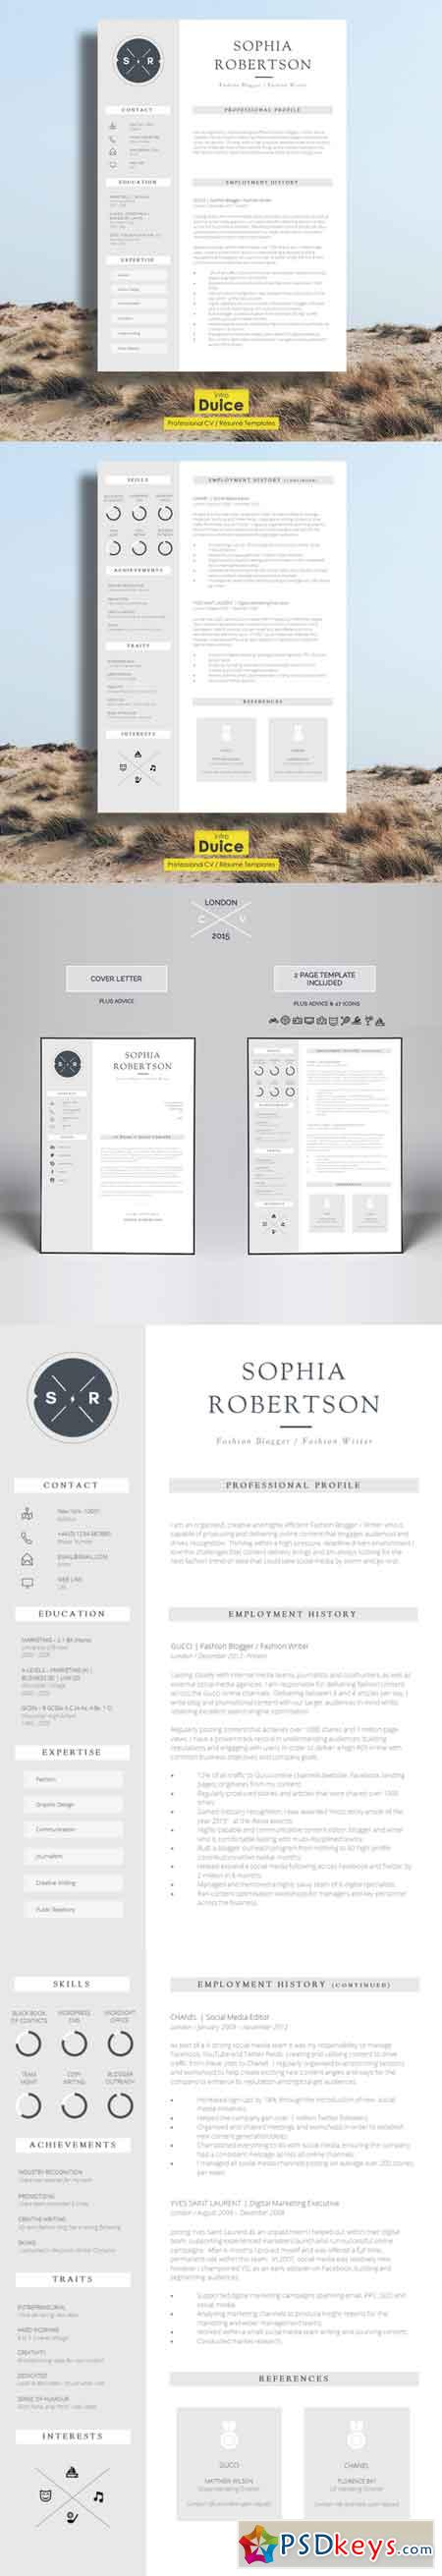 Creative Resume Template Chancery   Free Download Photoshop